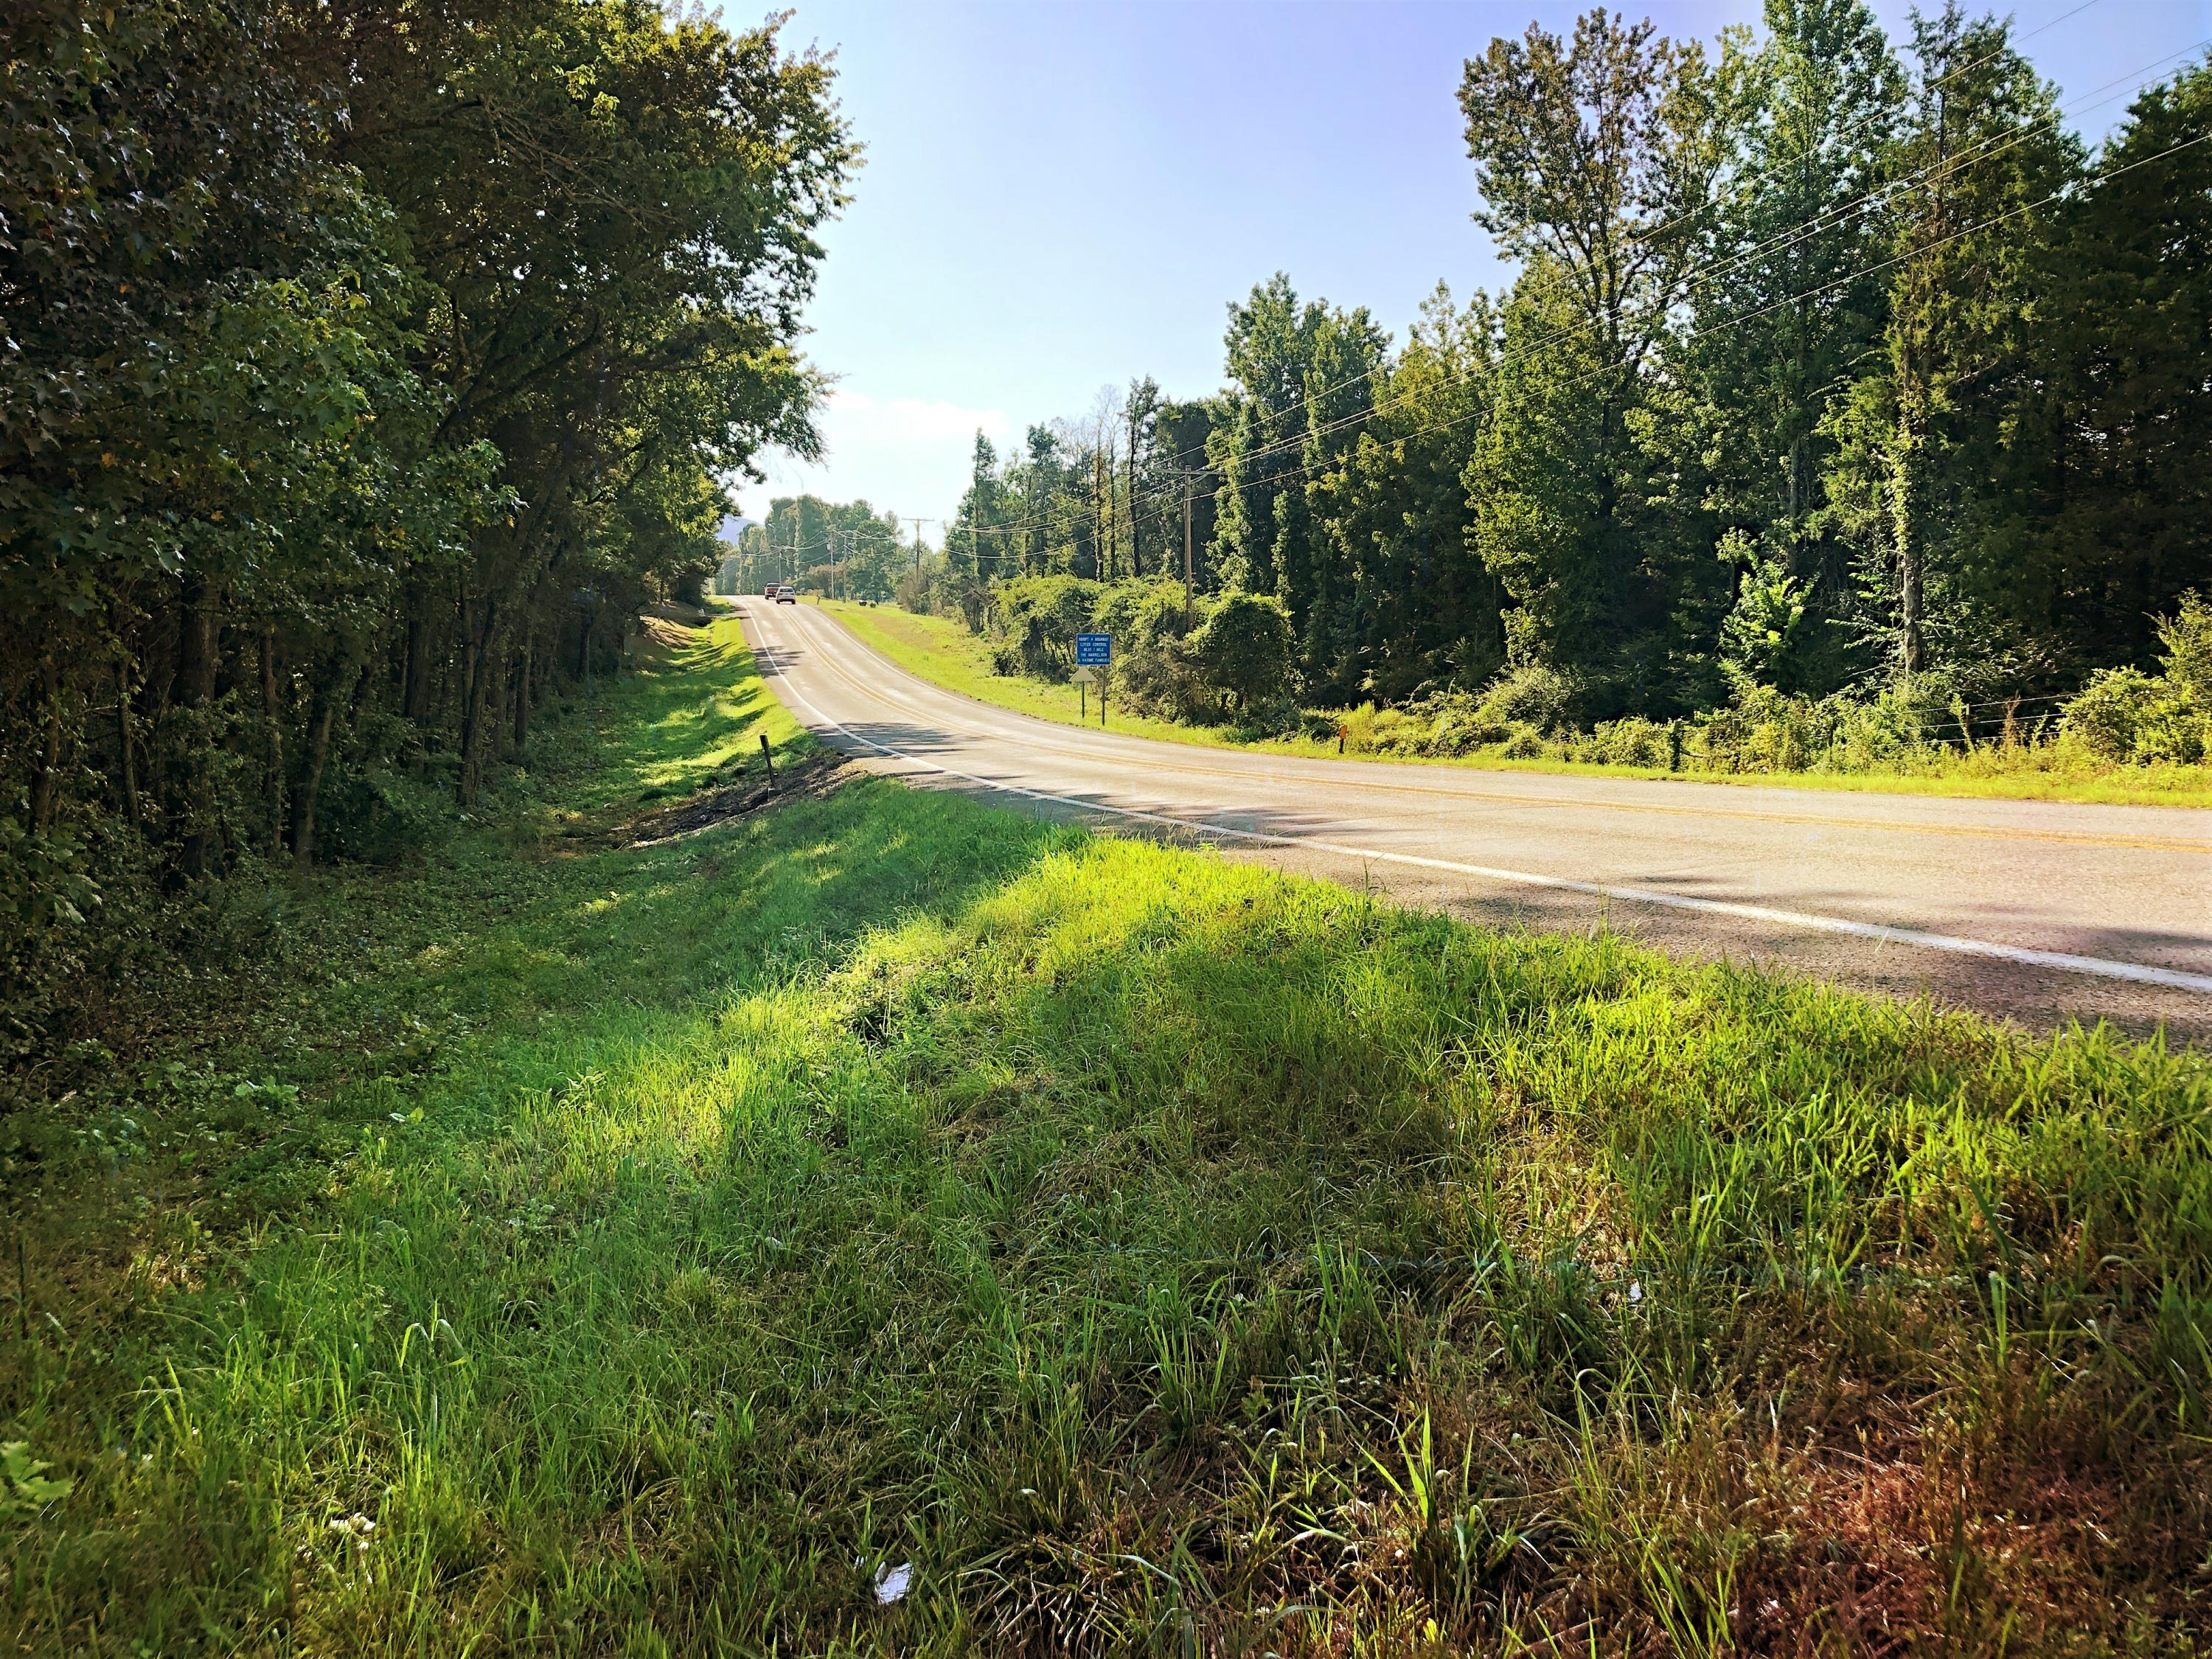 Large photo 11 of land for sale at 0 State Highway 155 , Dardanelle, AR, listed by Coldwell Banker James R. Ford